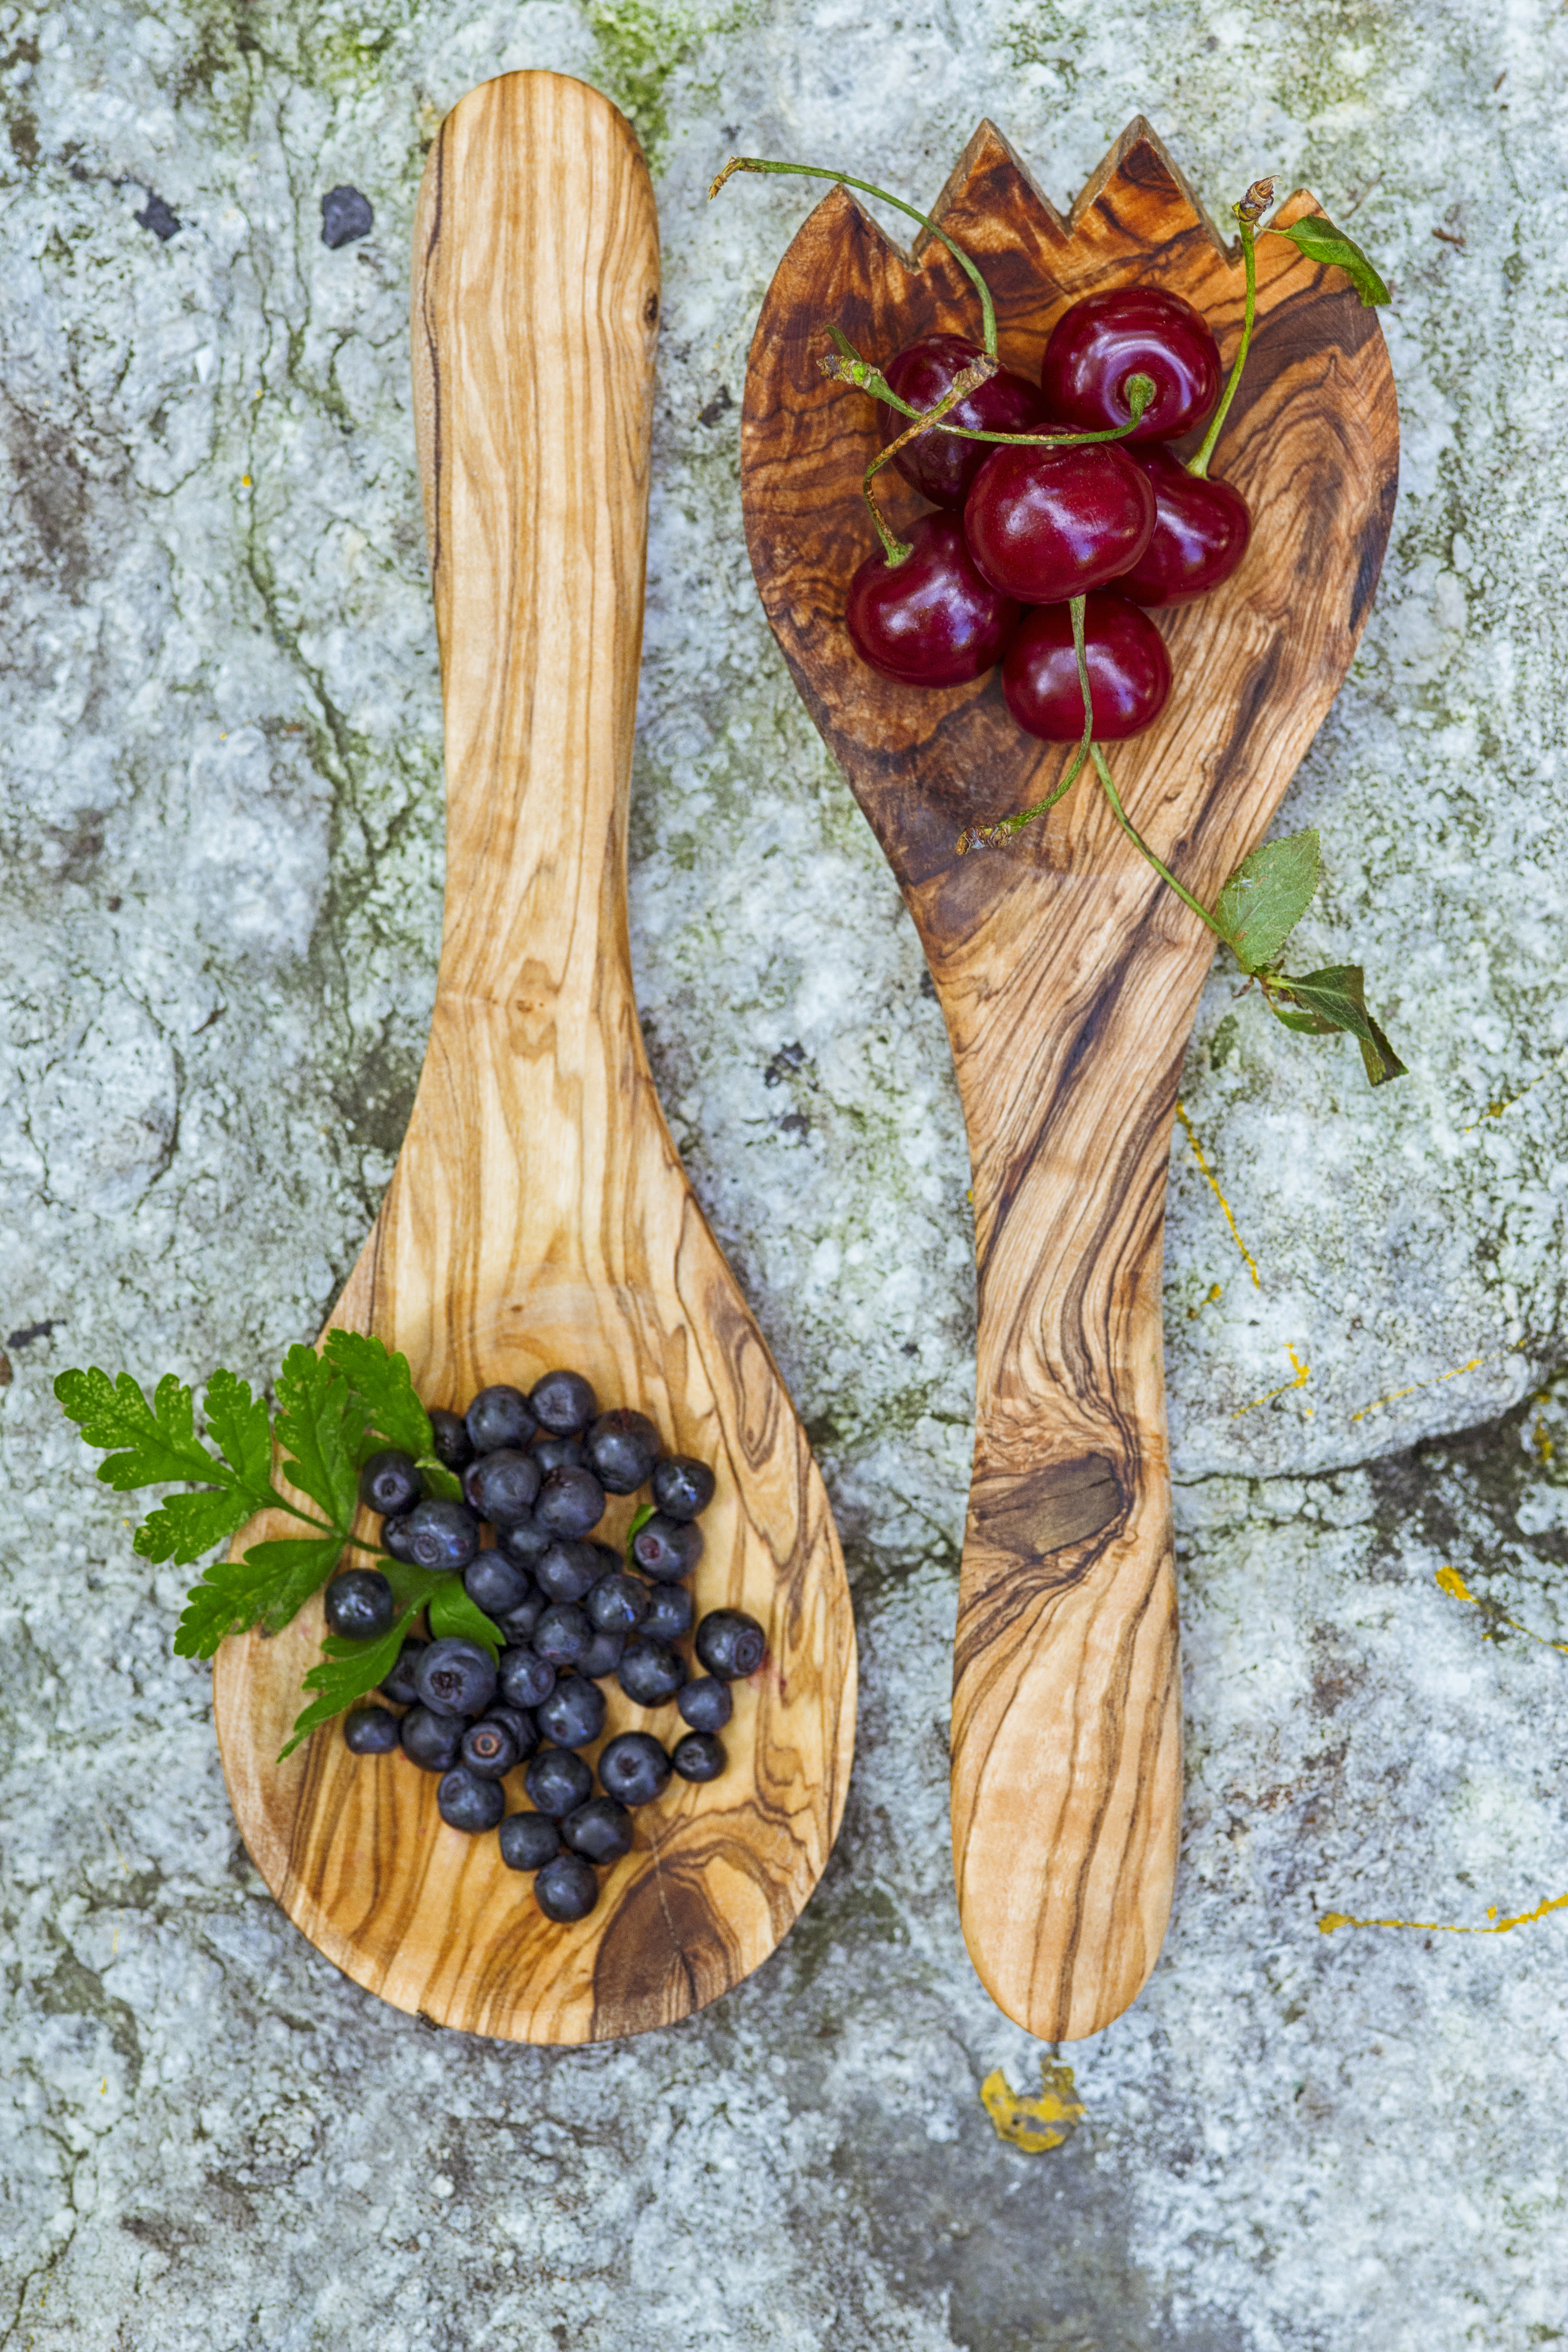 Cherries and blueberries in wooden spoon photo